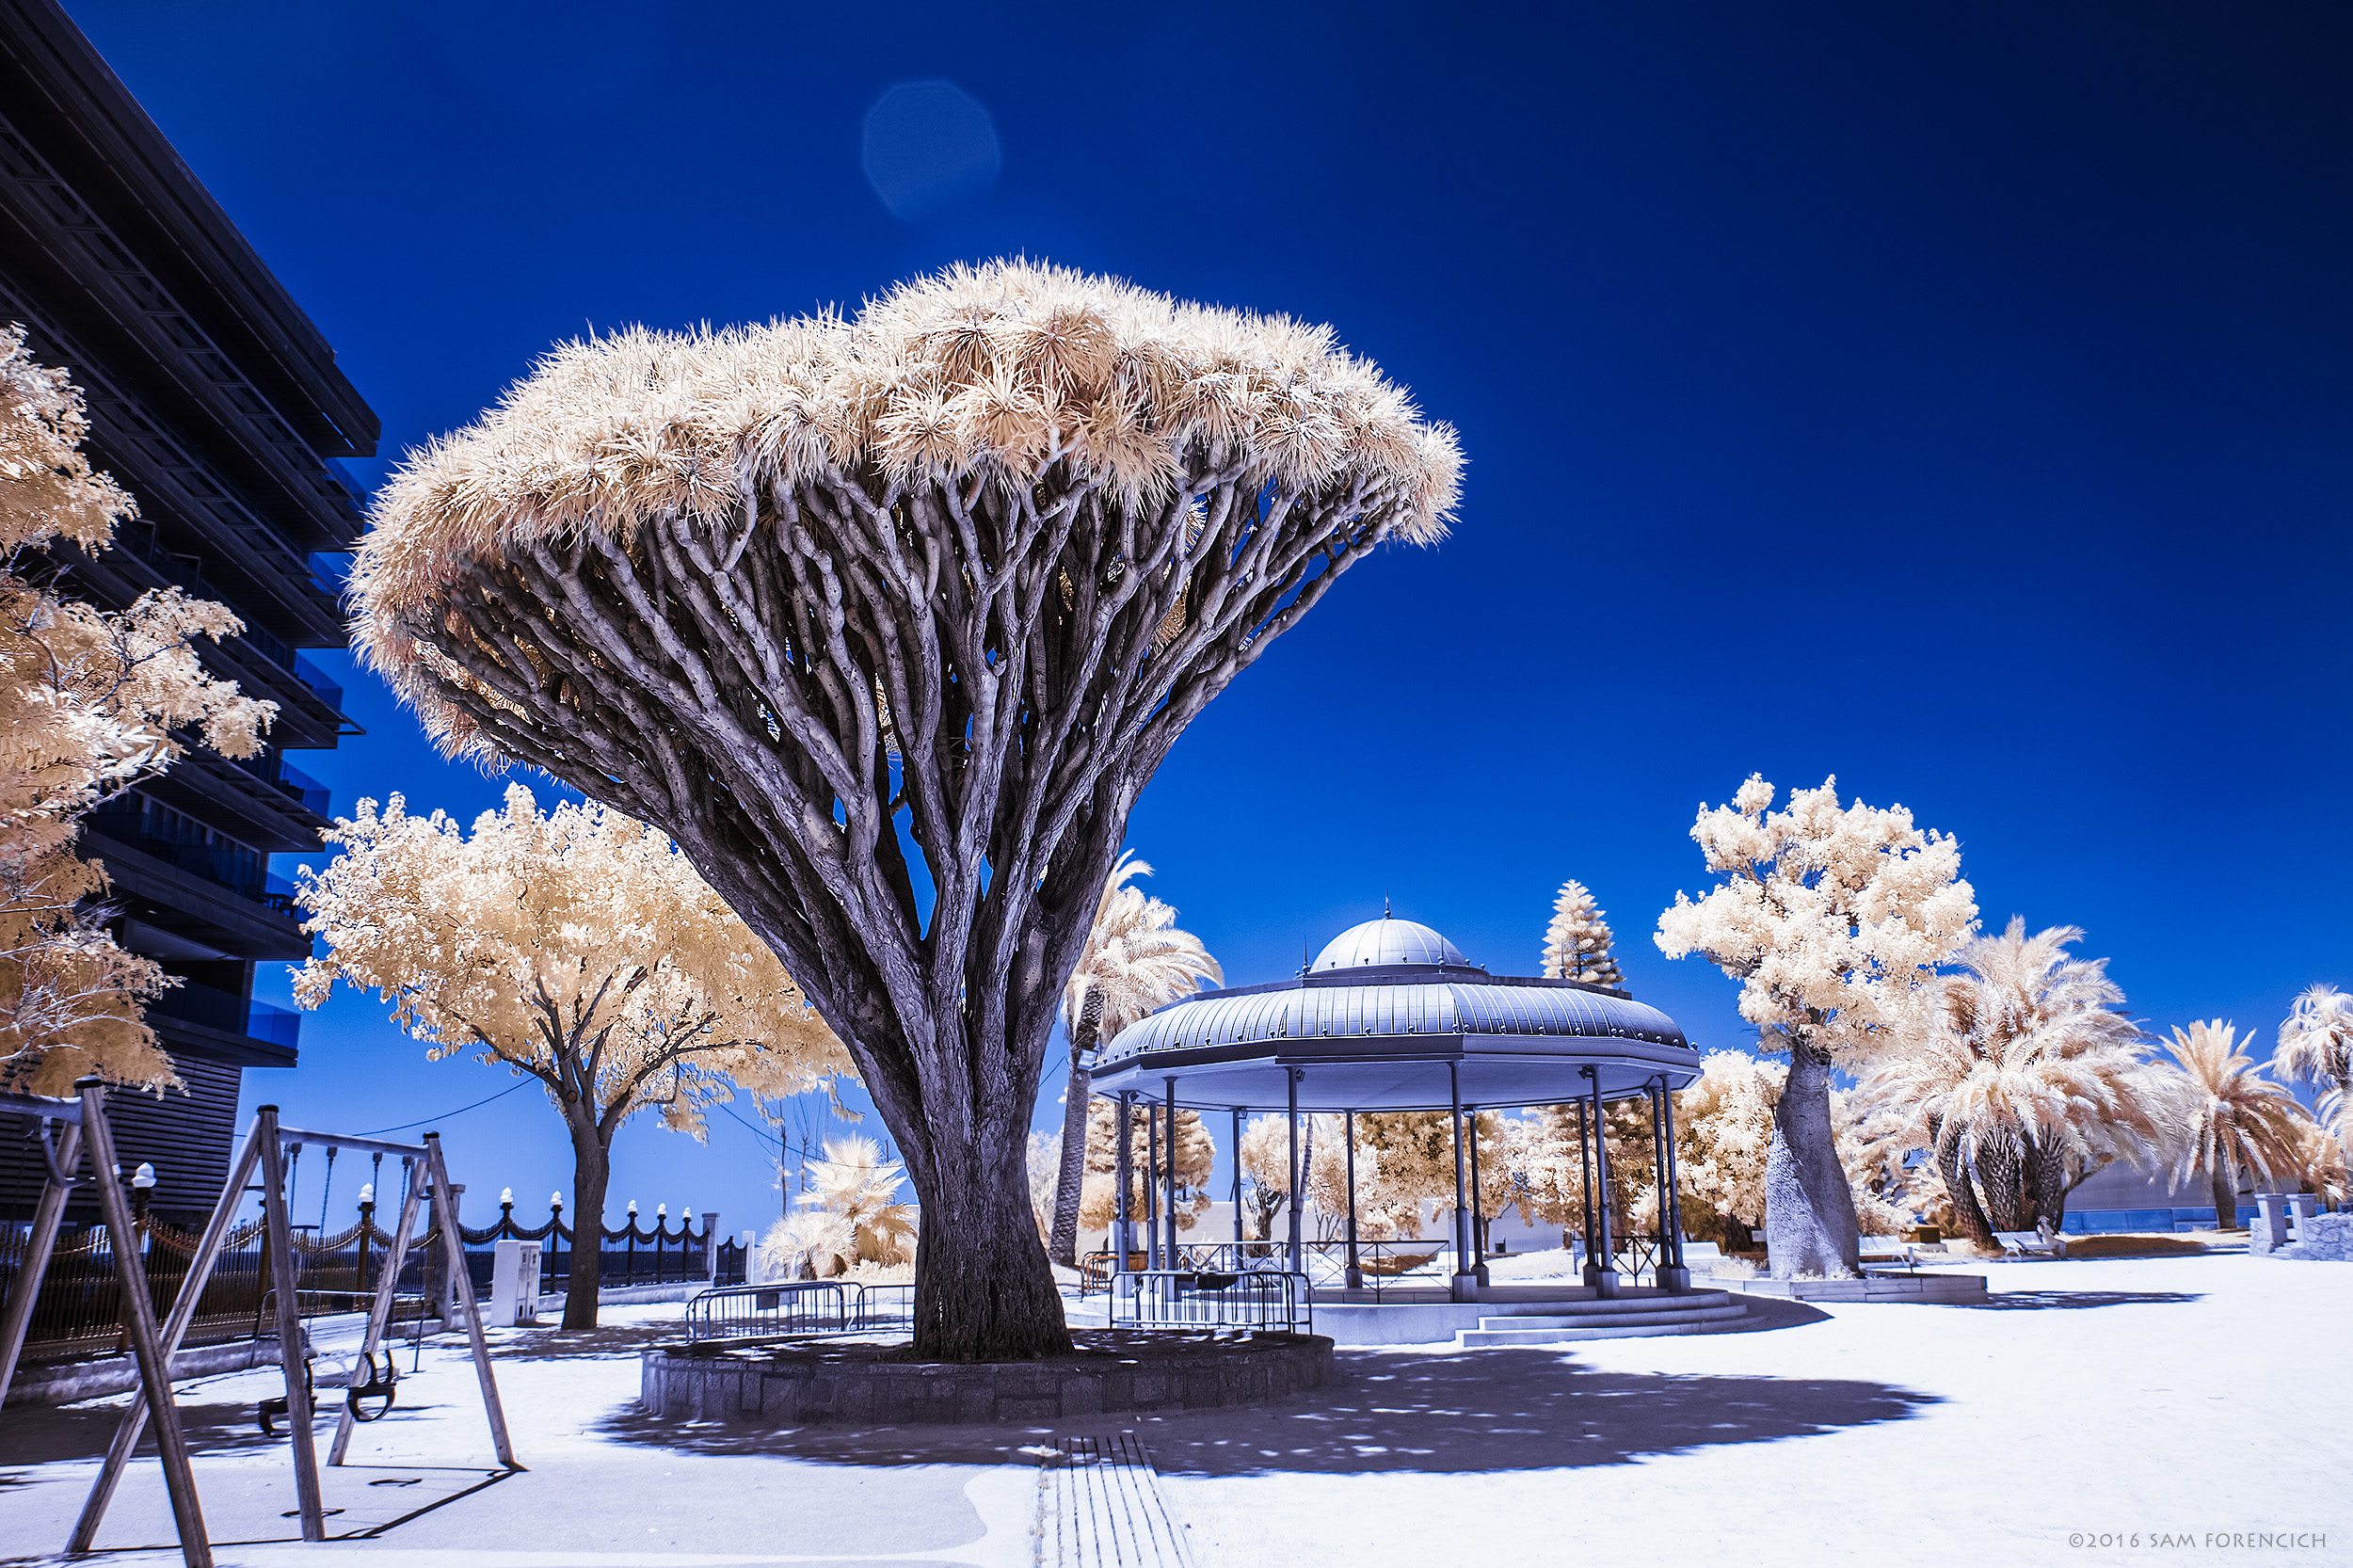 A Dragon Tree (Dracaena draco) overlooks the playground area of the Parque Genoves in the Andalusian city of Cadiz, Spain. Channel swapped infrared, IR converted Canon 5D Mark II. © 2015 Sam Forencich